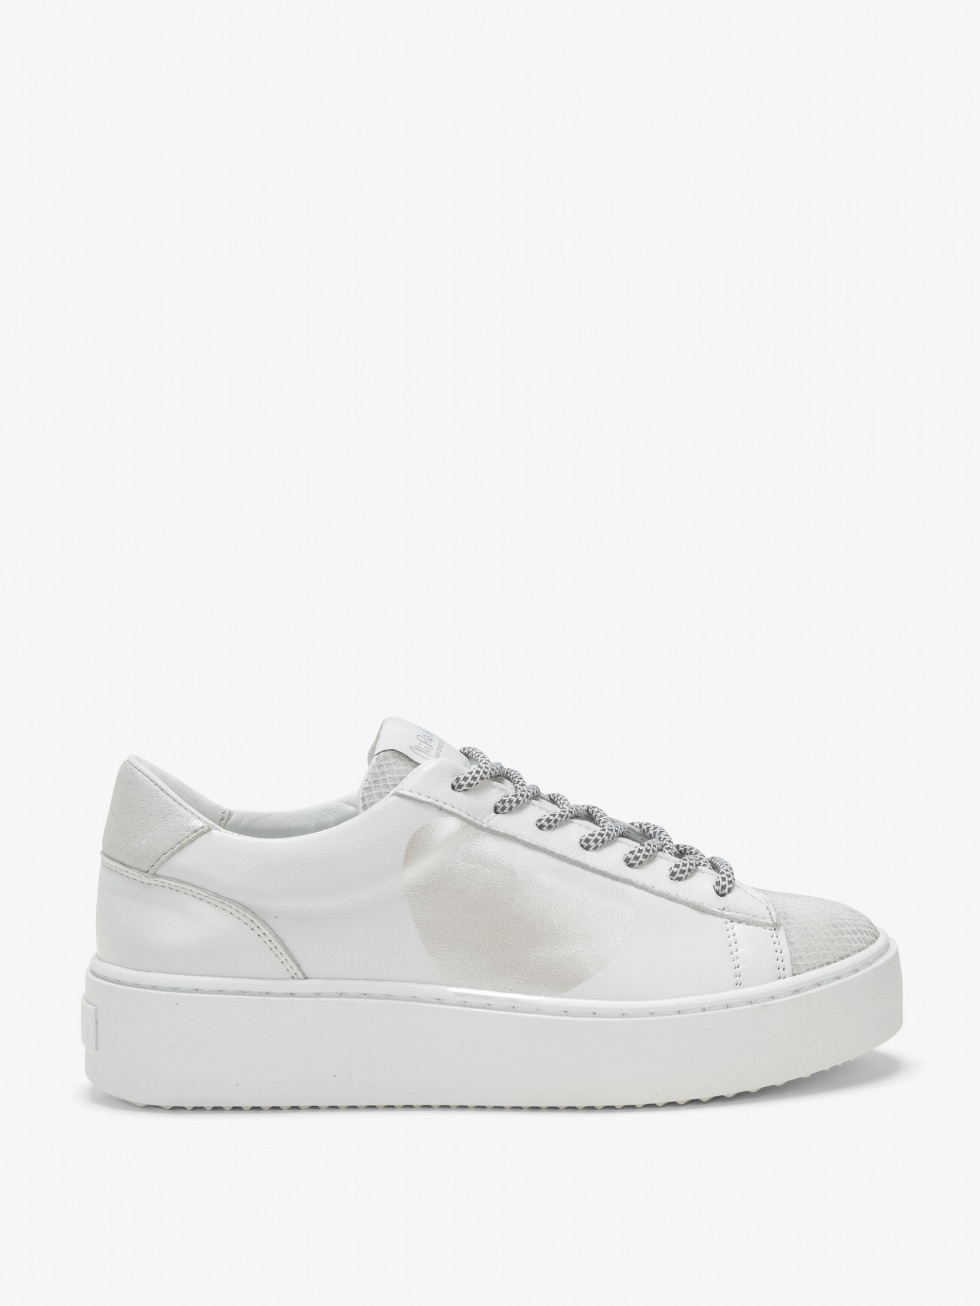 Cosmopolitan Sneakers Silver Blanched - Heart